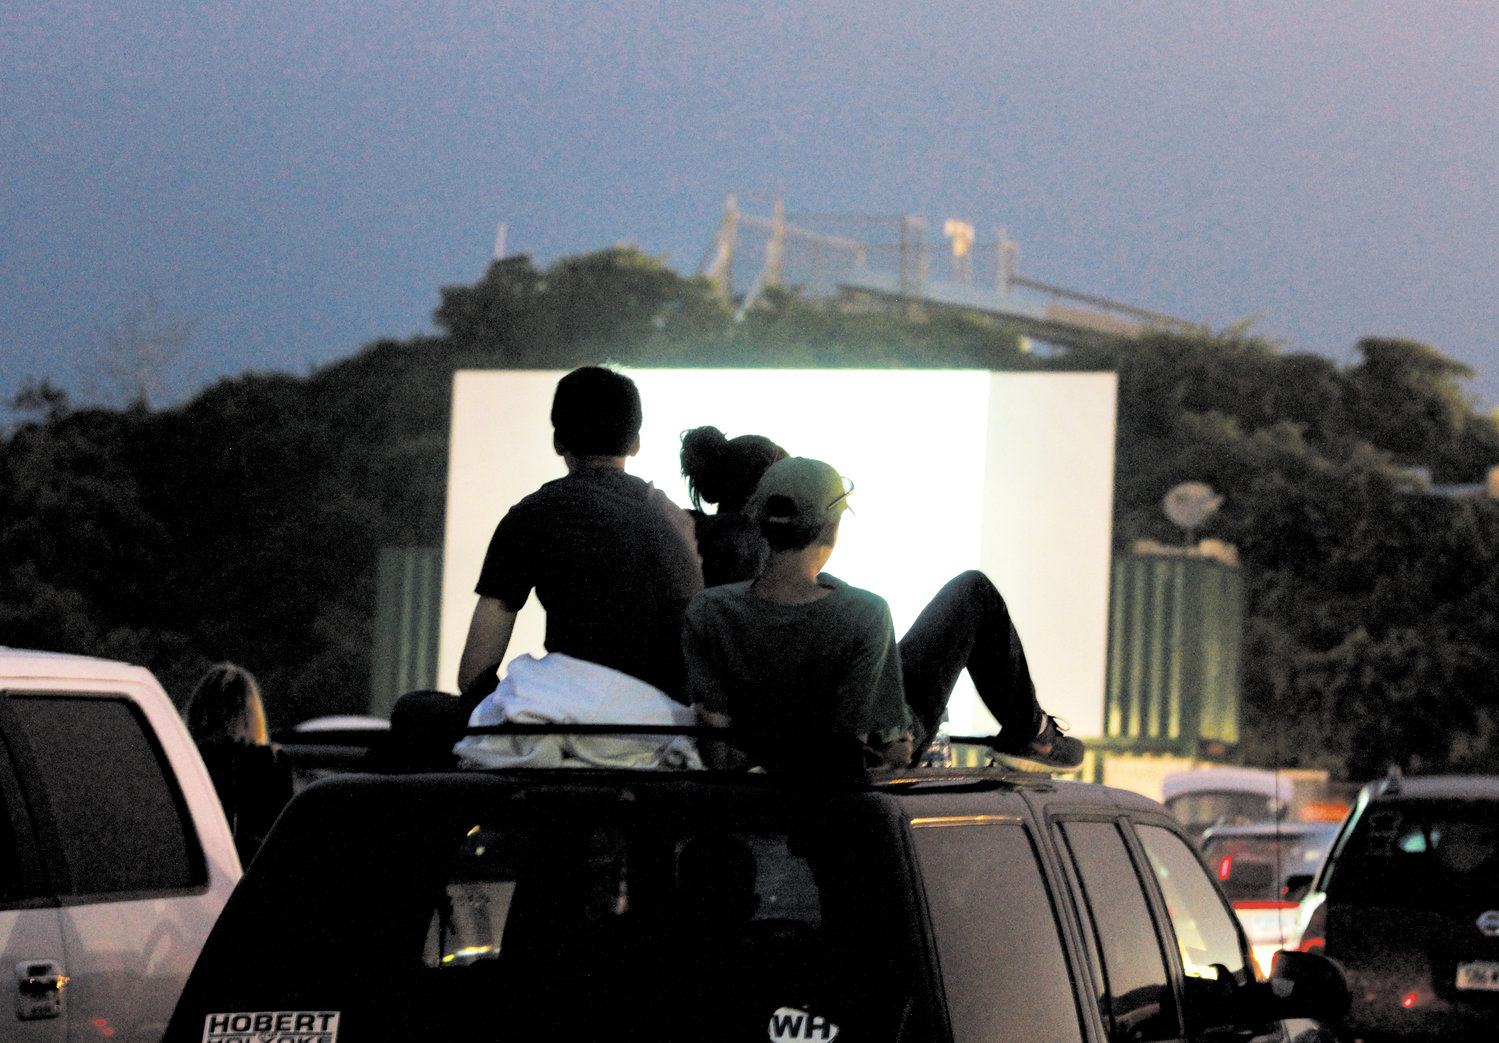 July 26-27: Catch a movie at Misquamicut Drive-In. This weekend's? Ghostbusters!